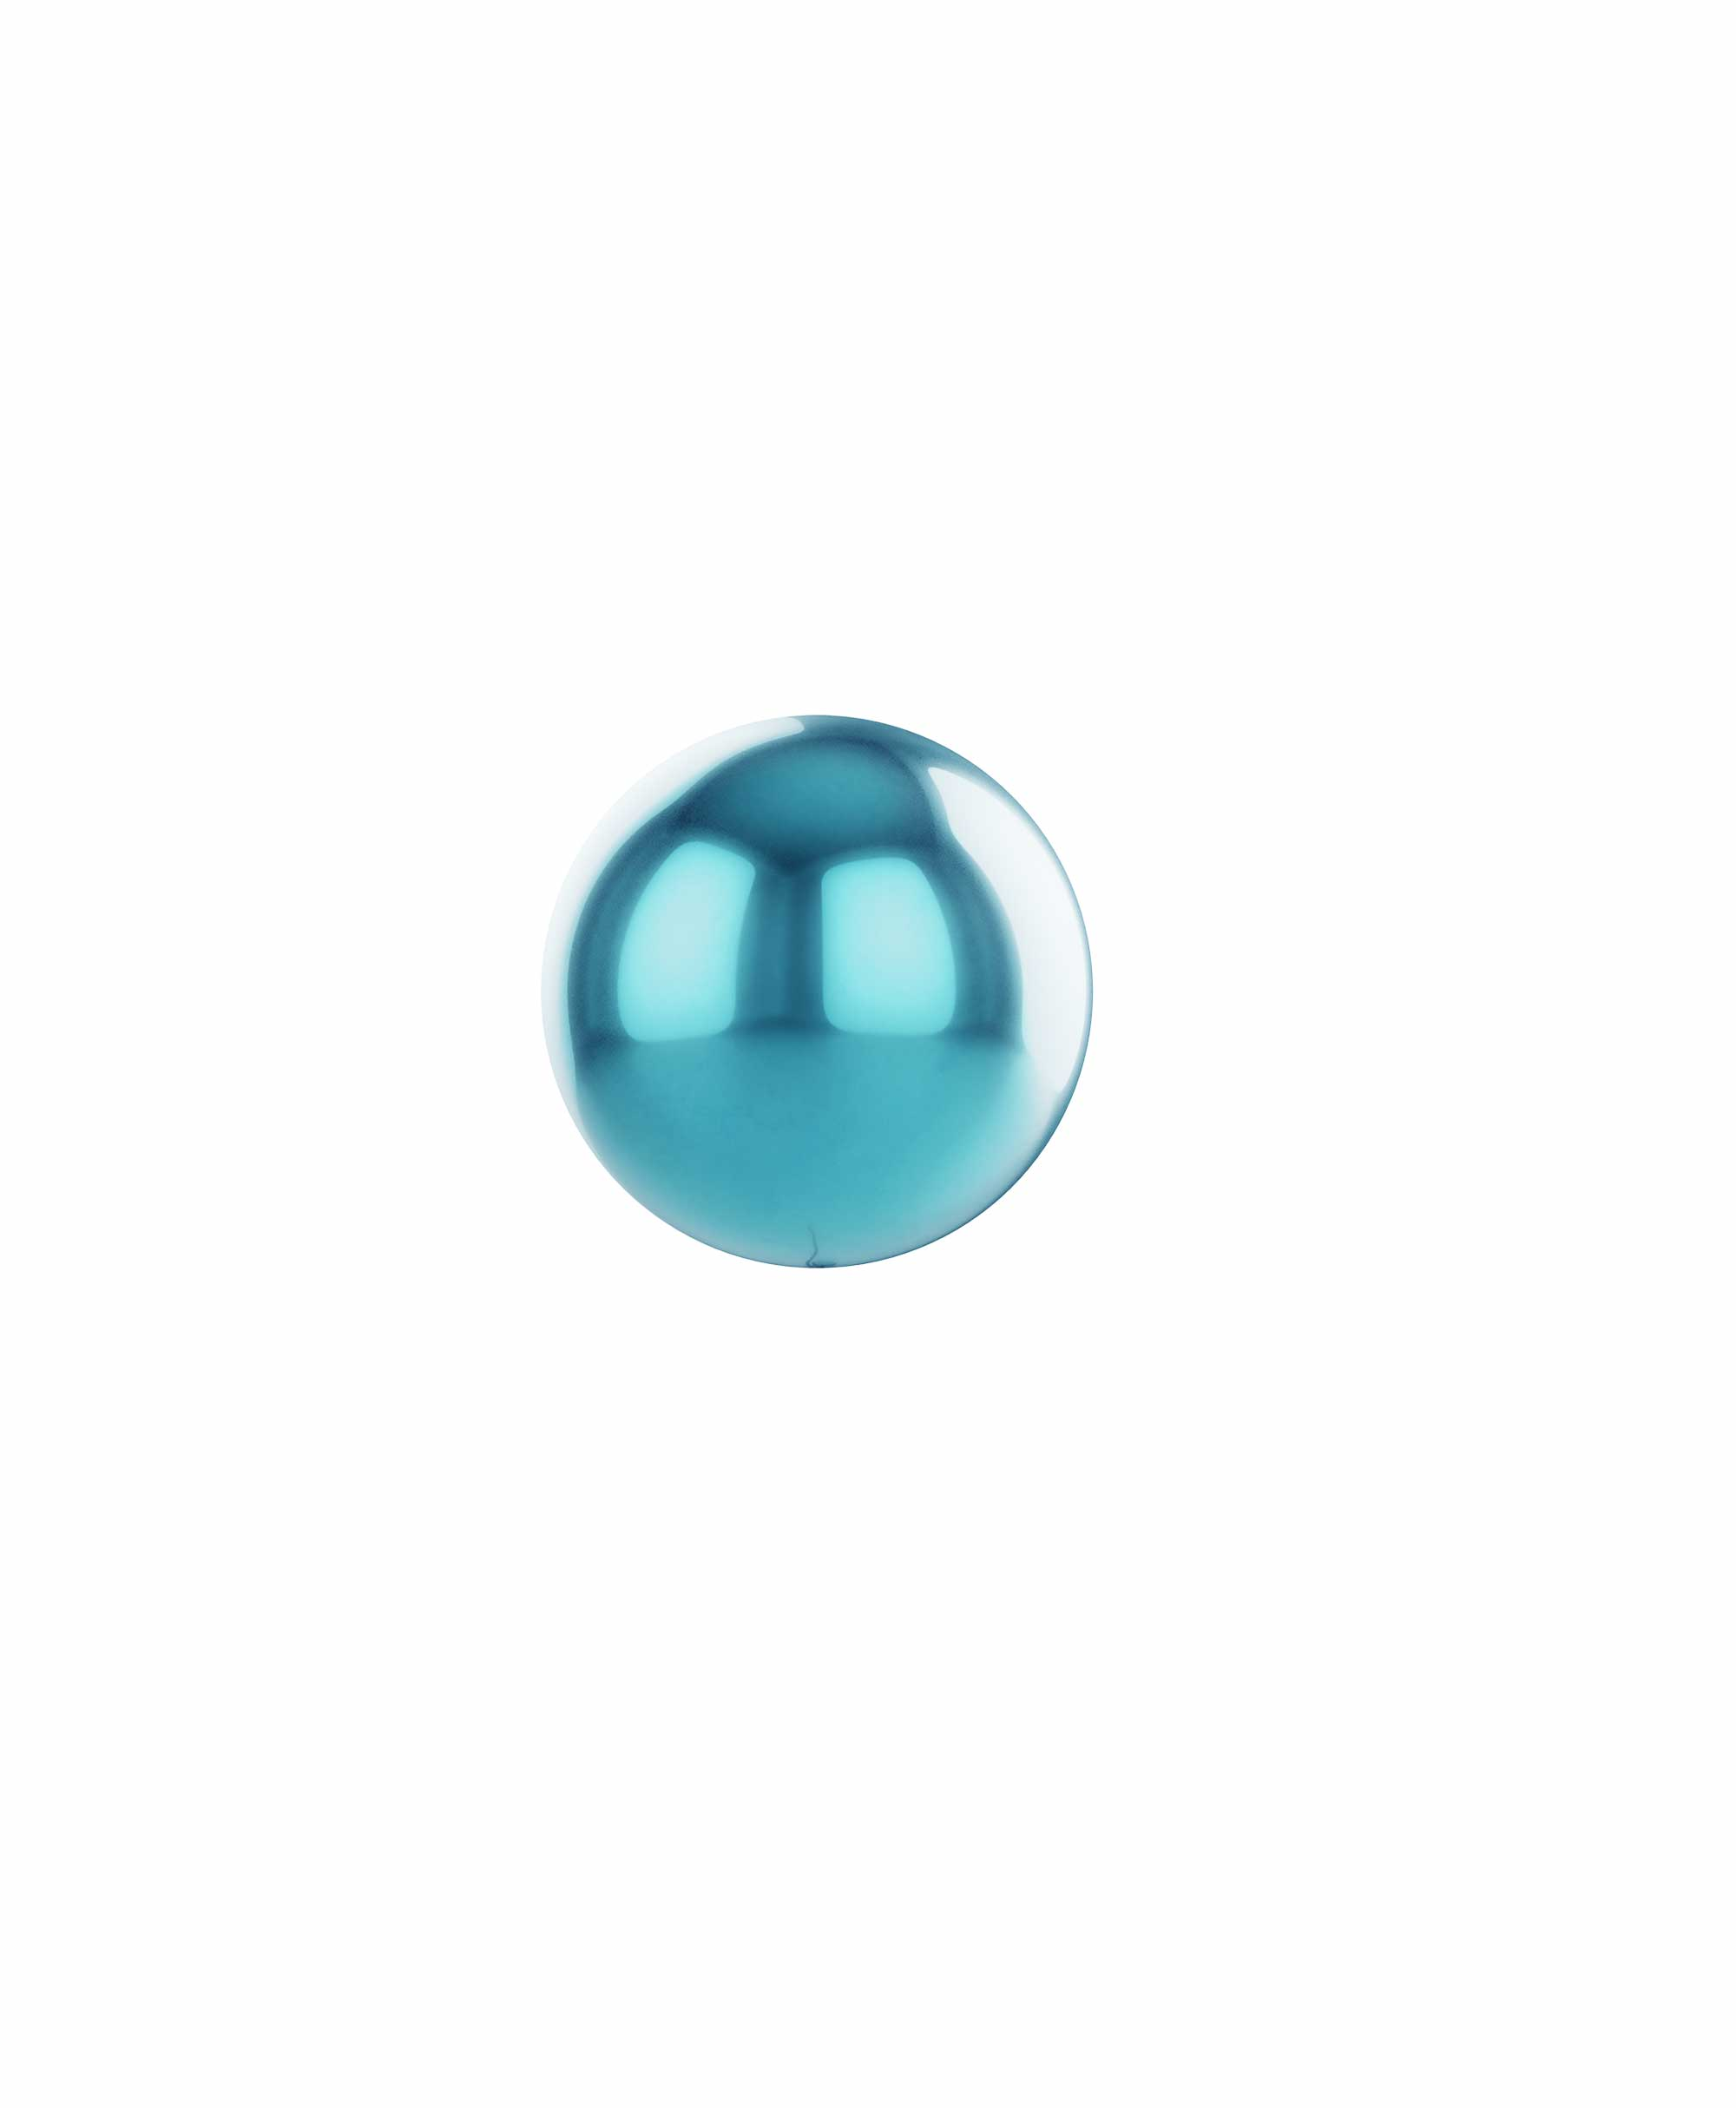 "Light blue balloon ball 10"" - Elephant theme"